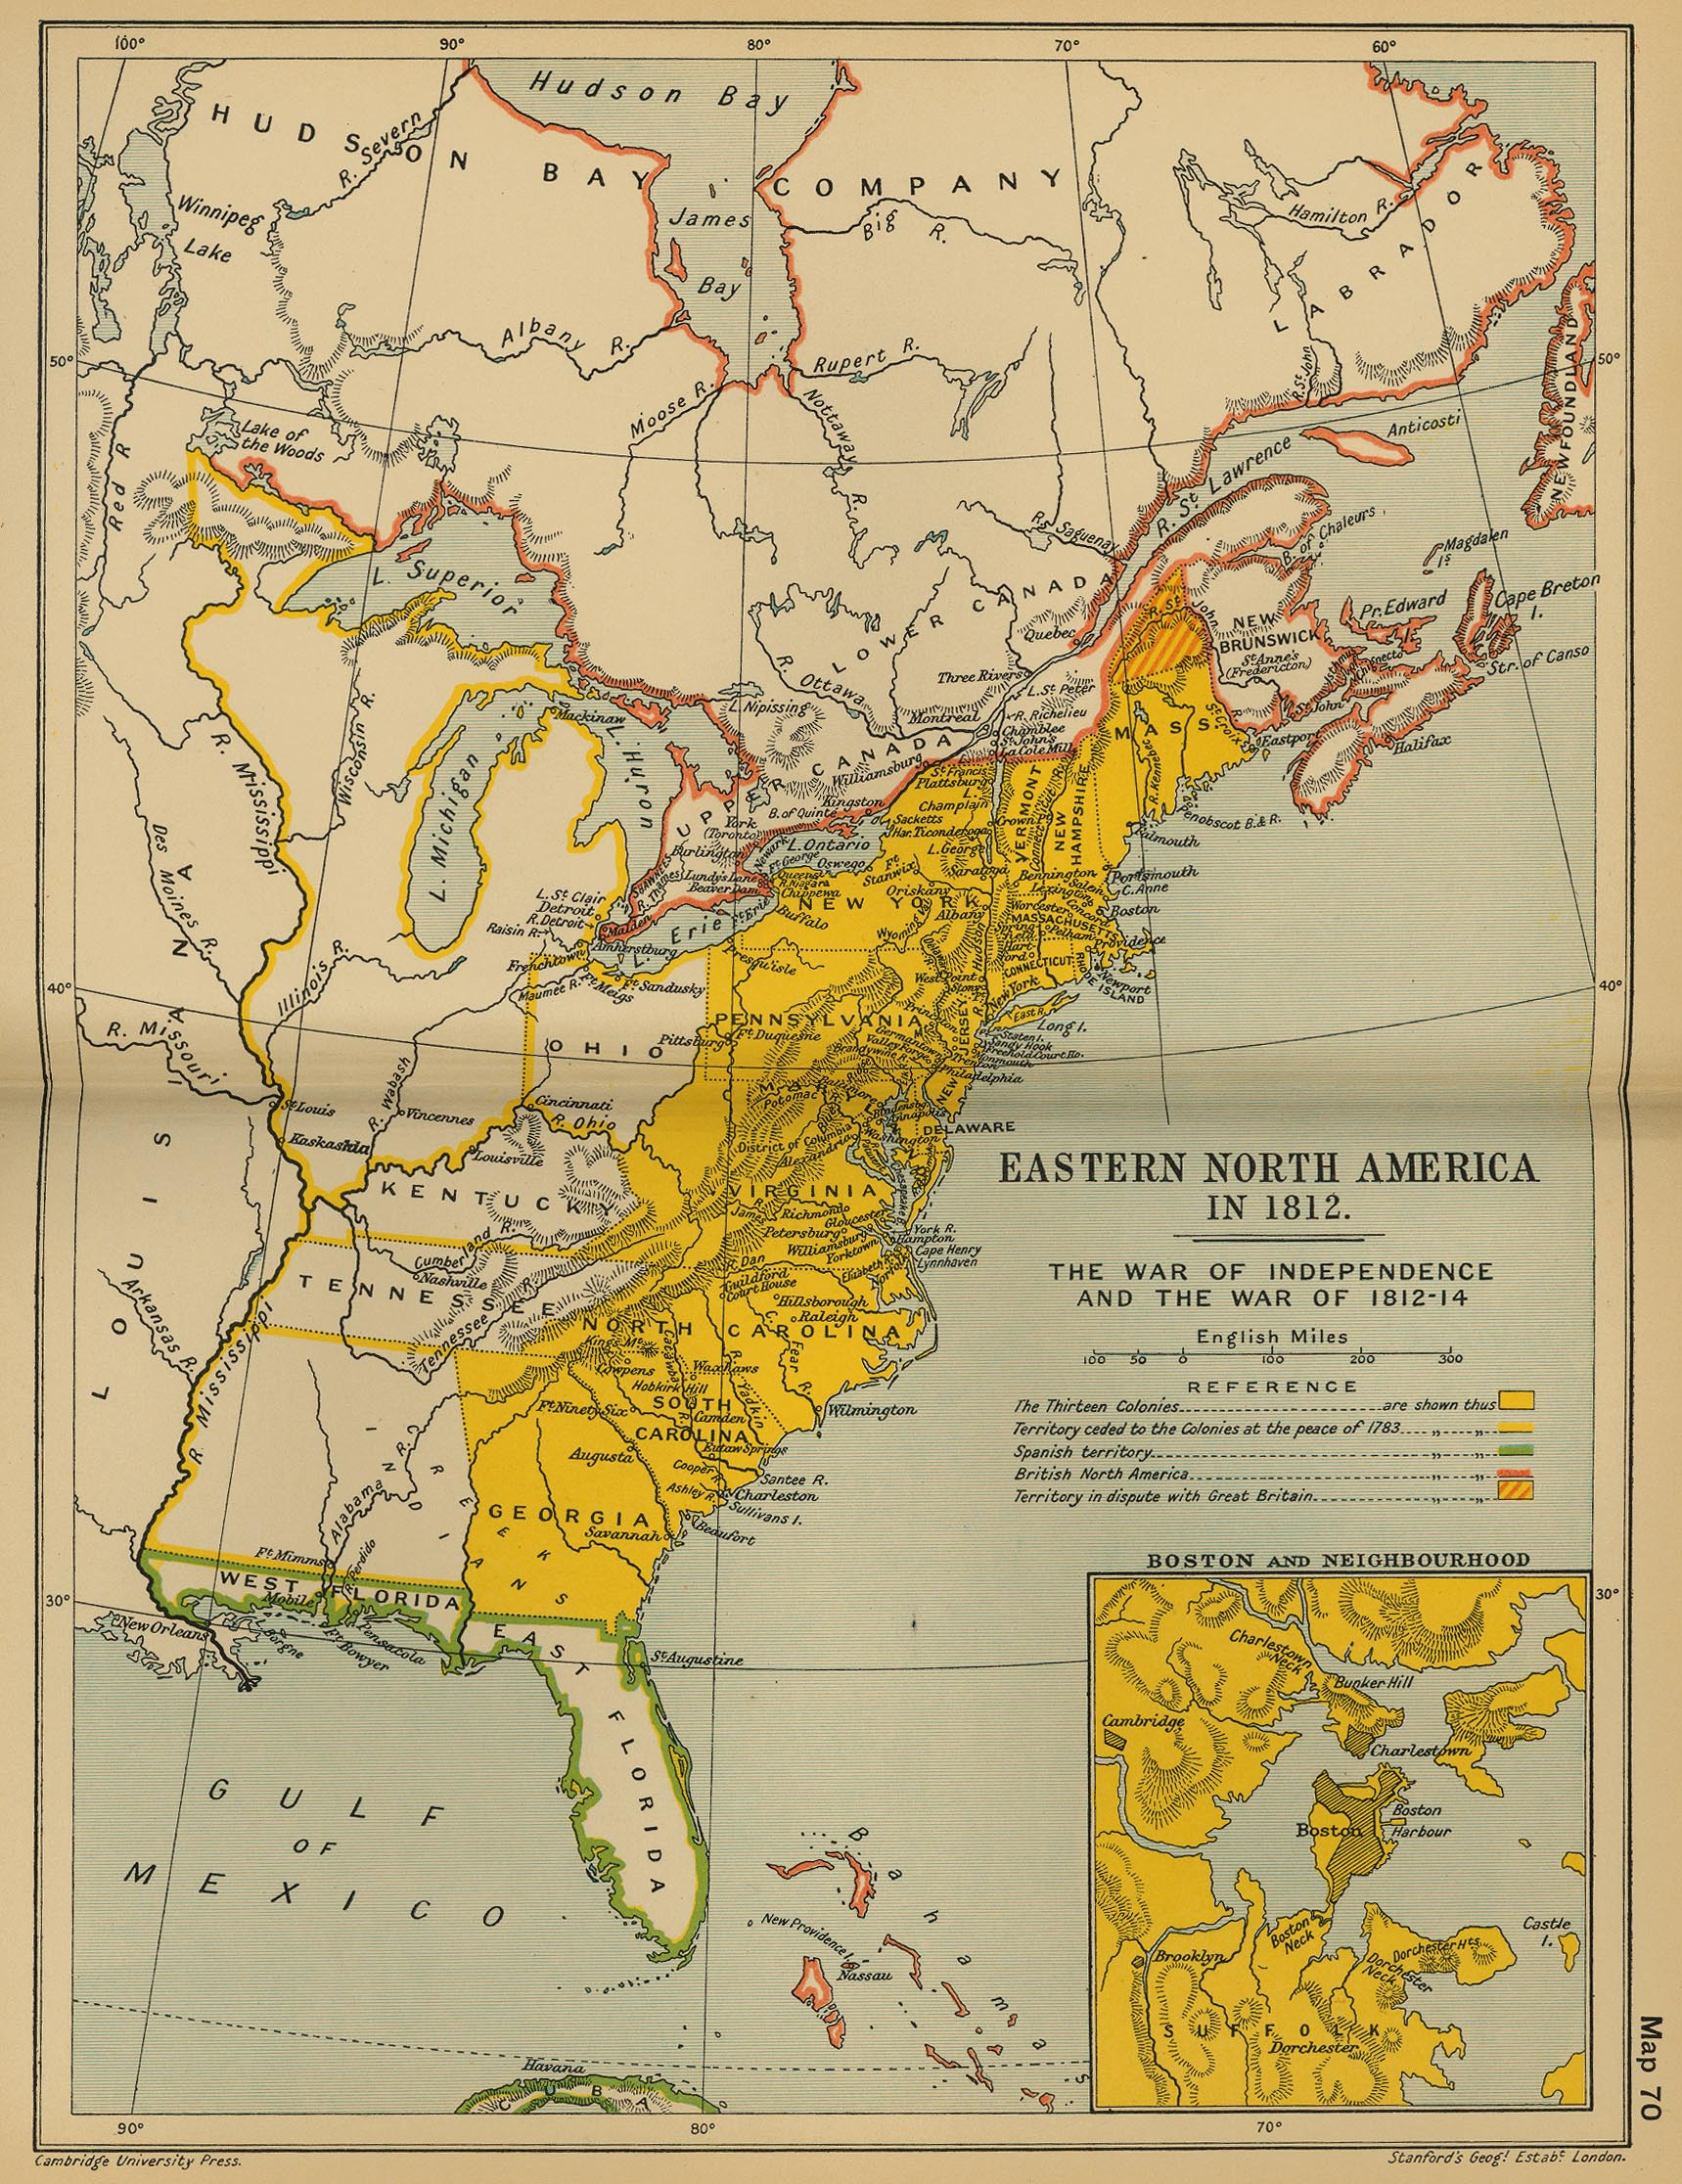 Map of Eastern North America 1812